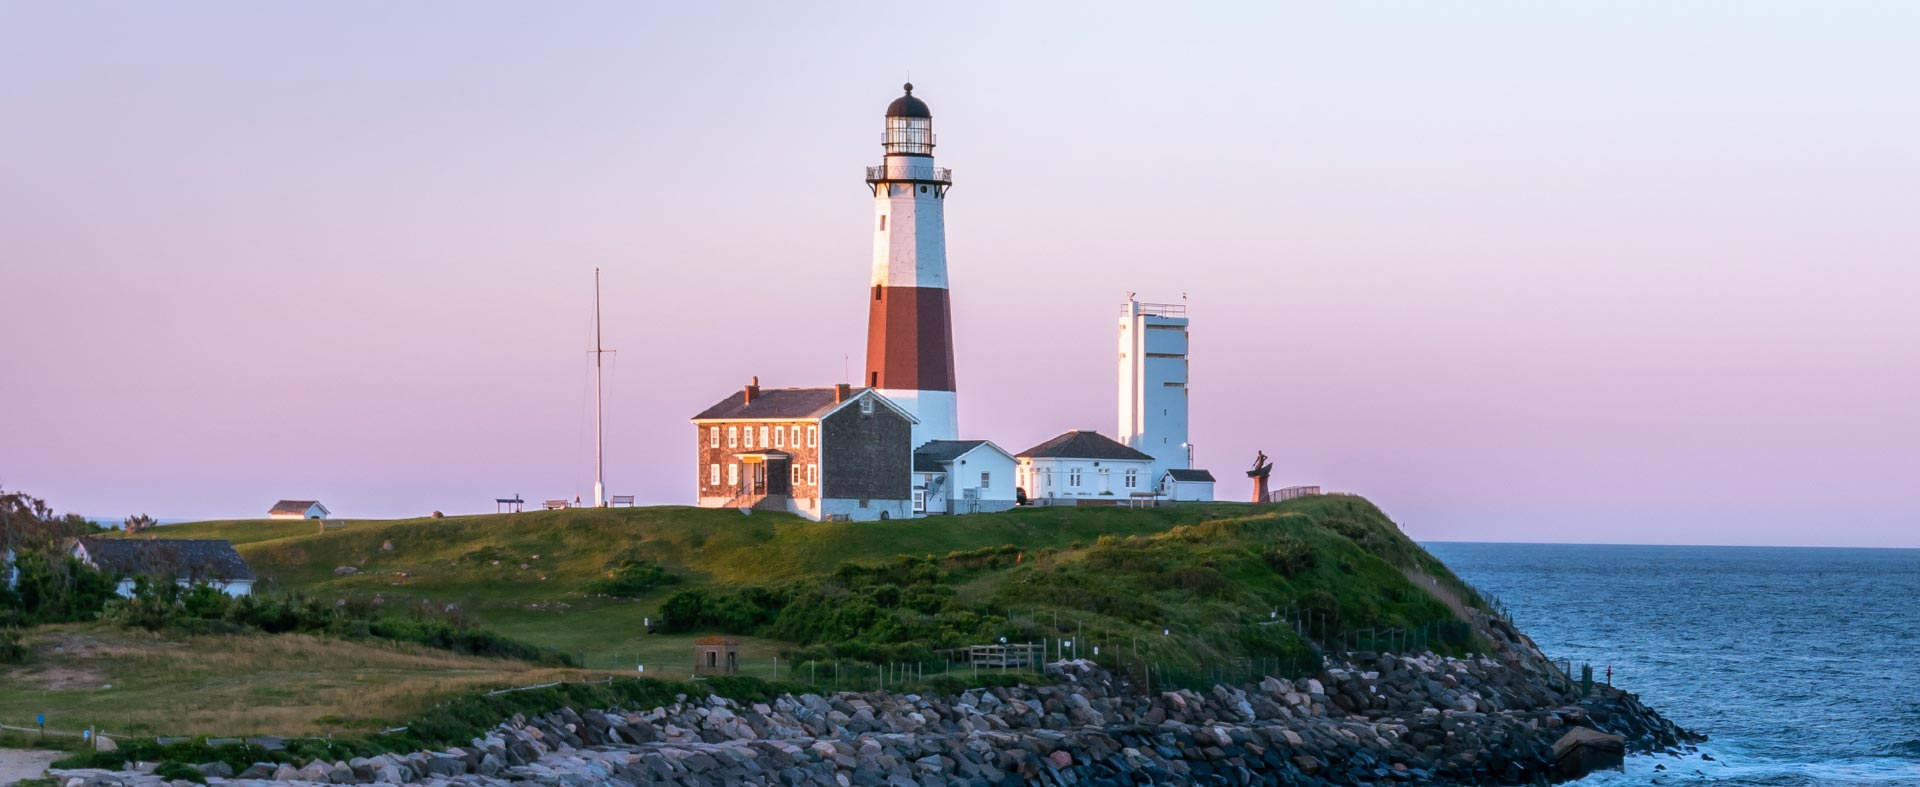 Image of Montauk Lighthouse